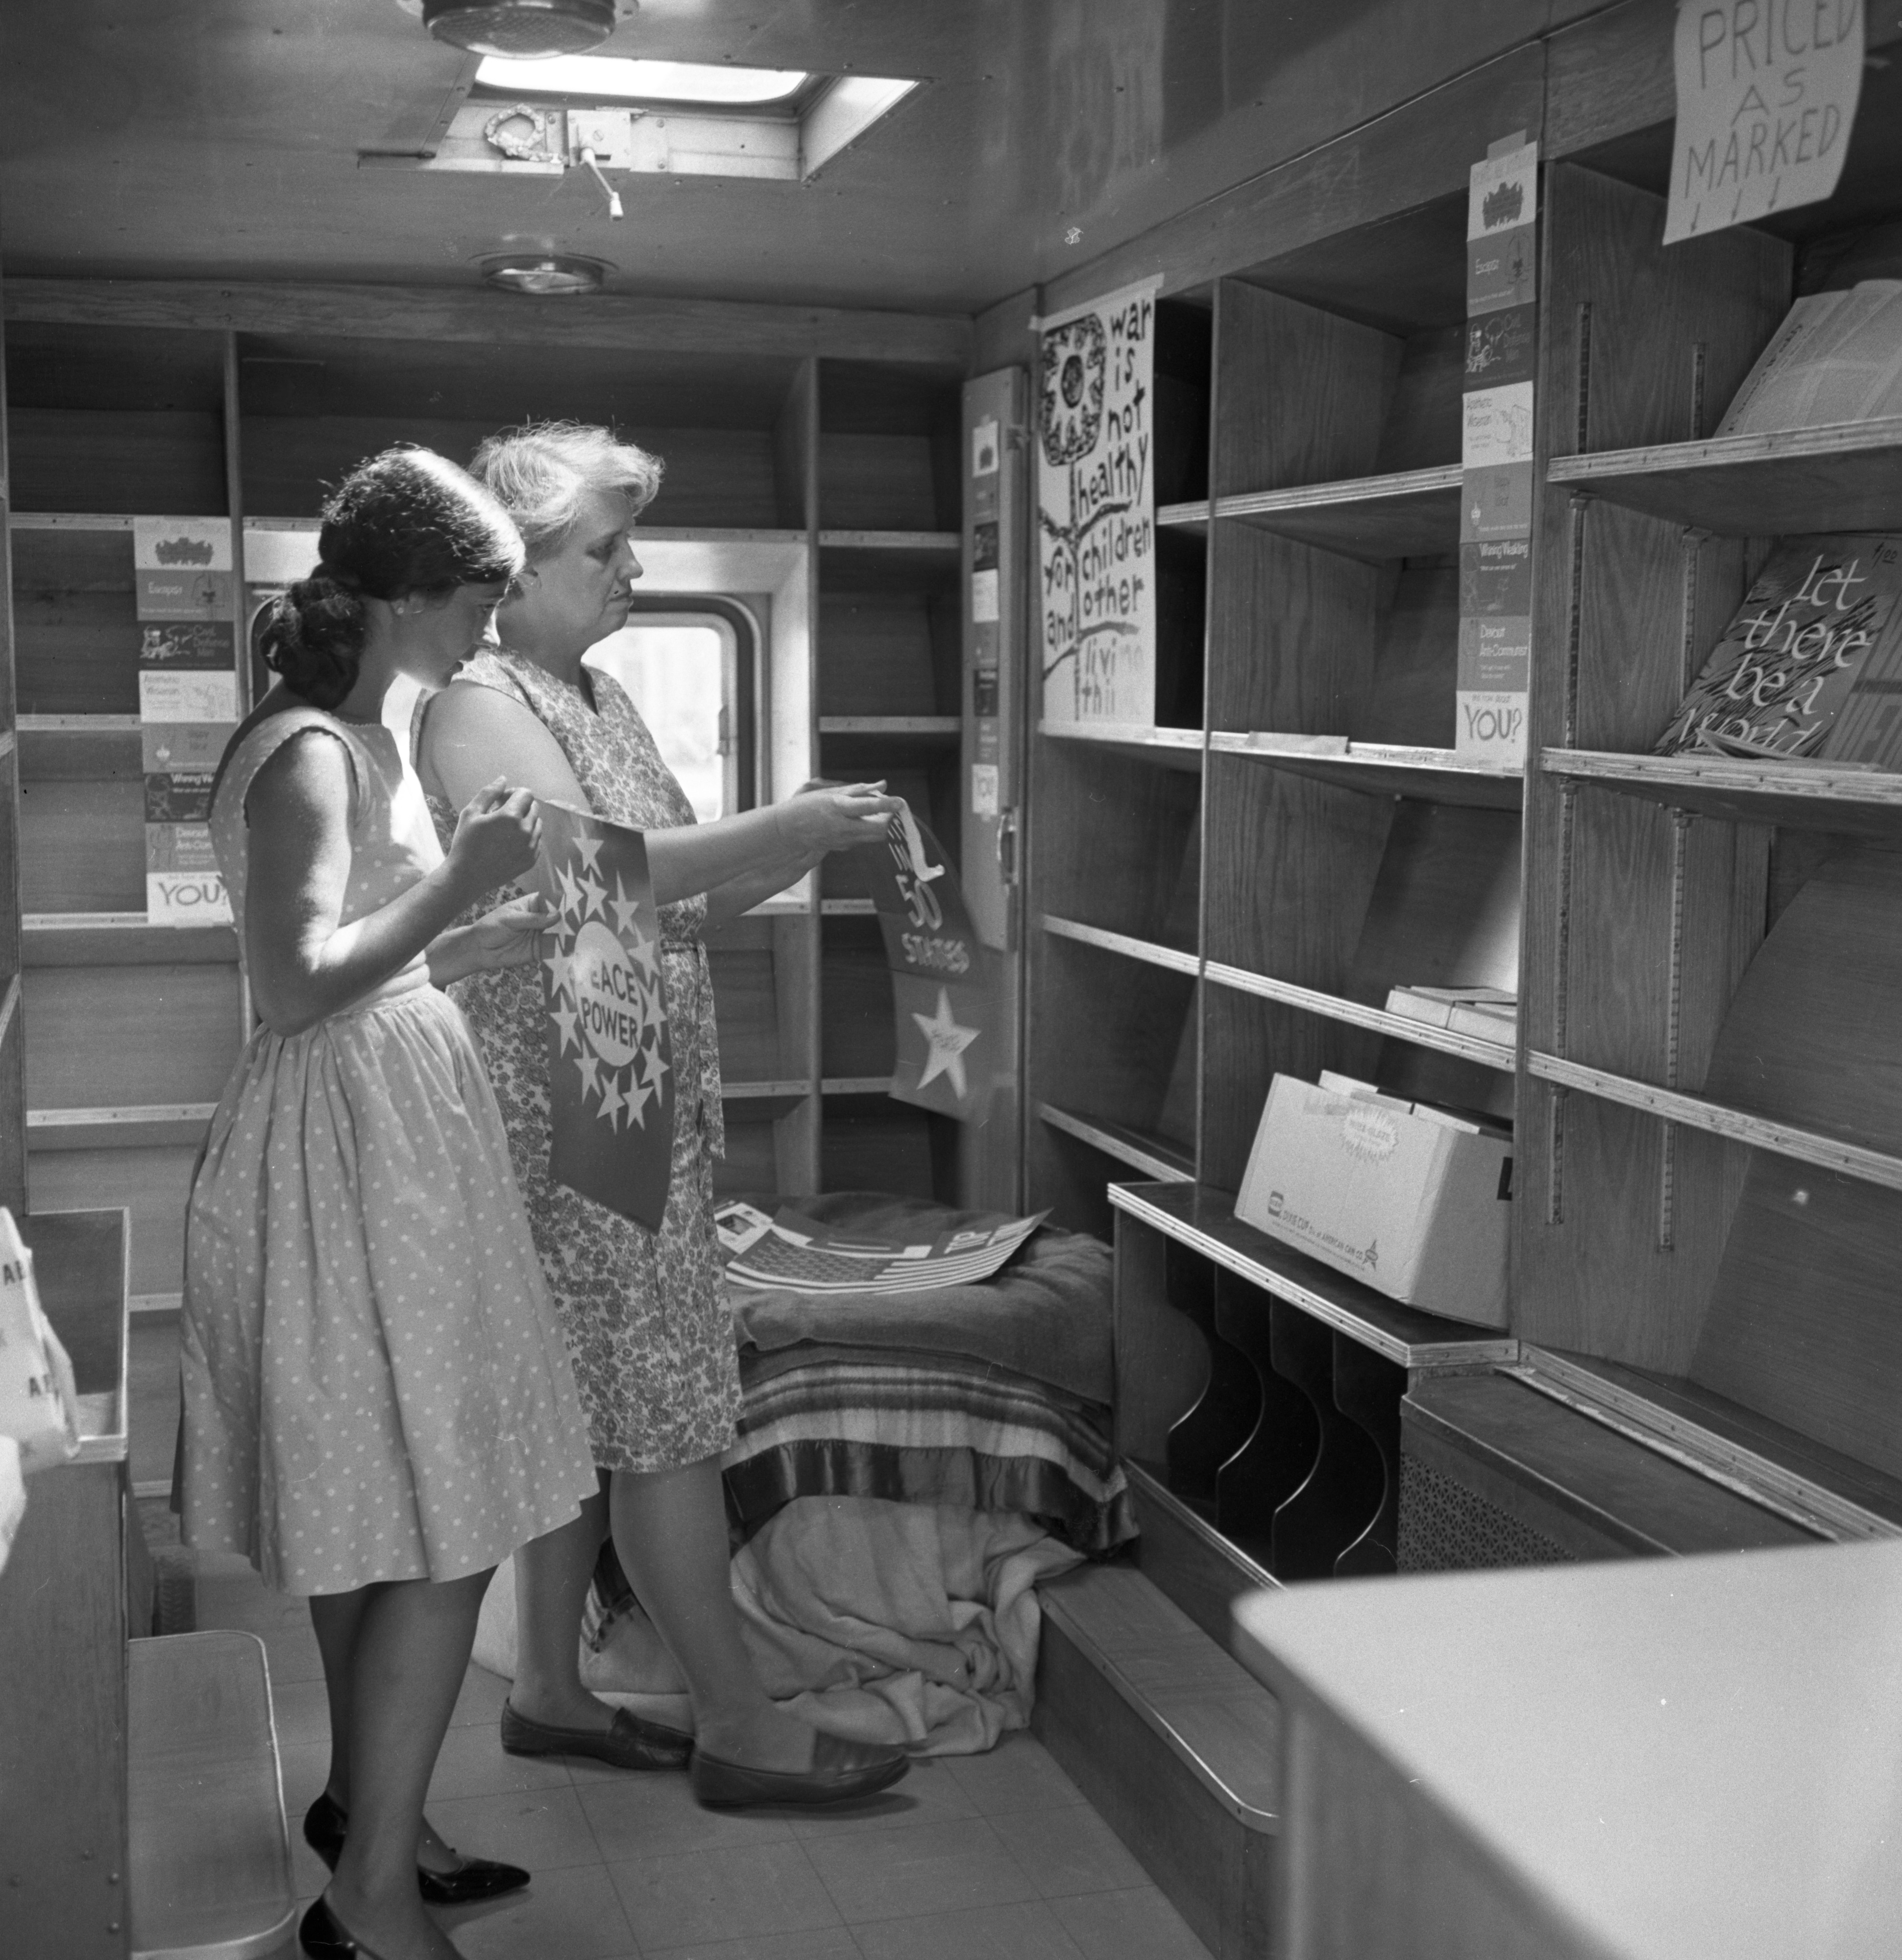 Inside the Peacemobile, July 1967 image